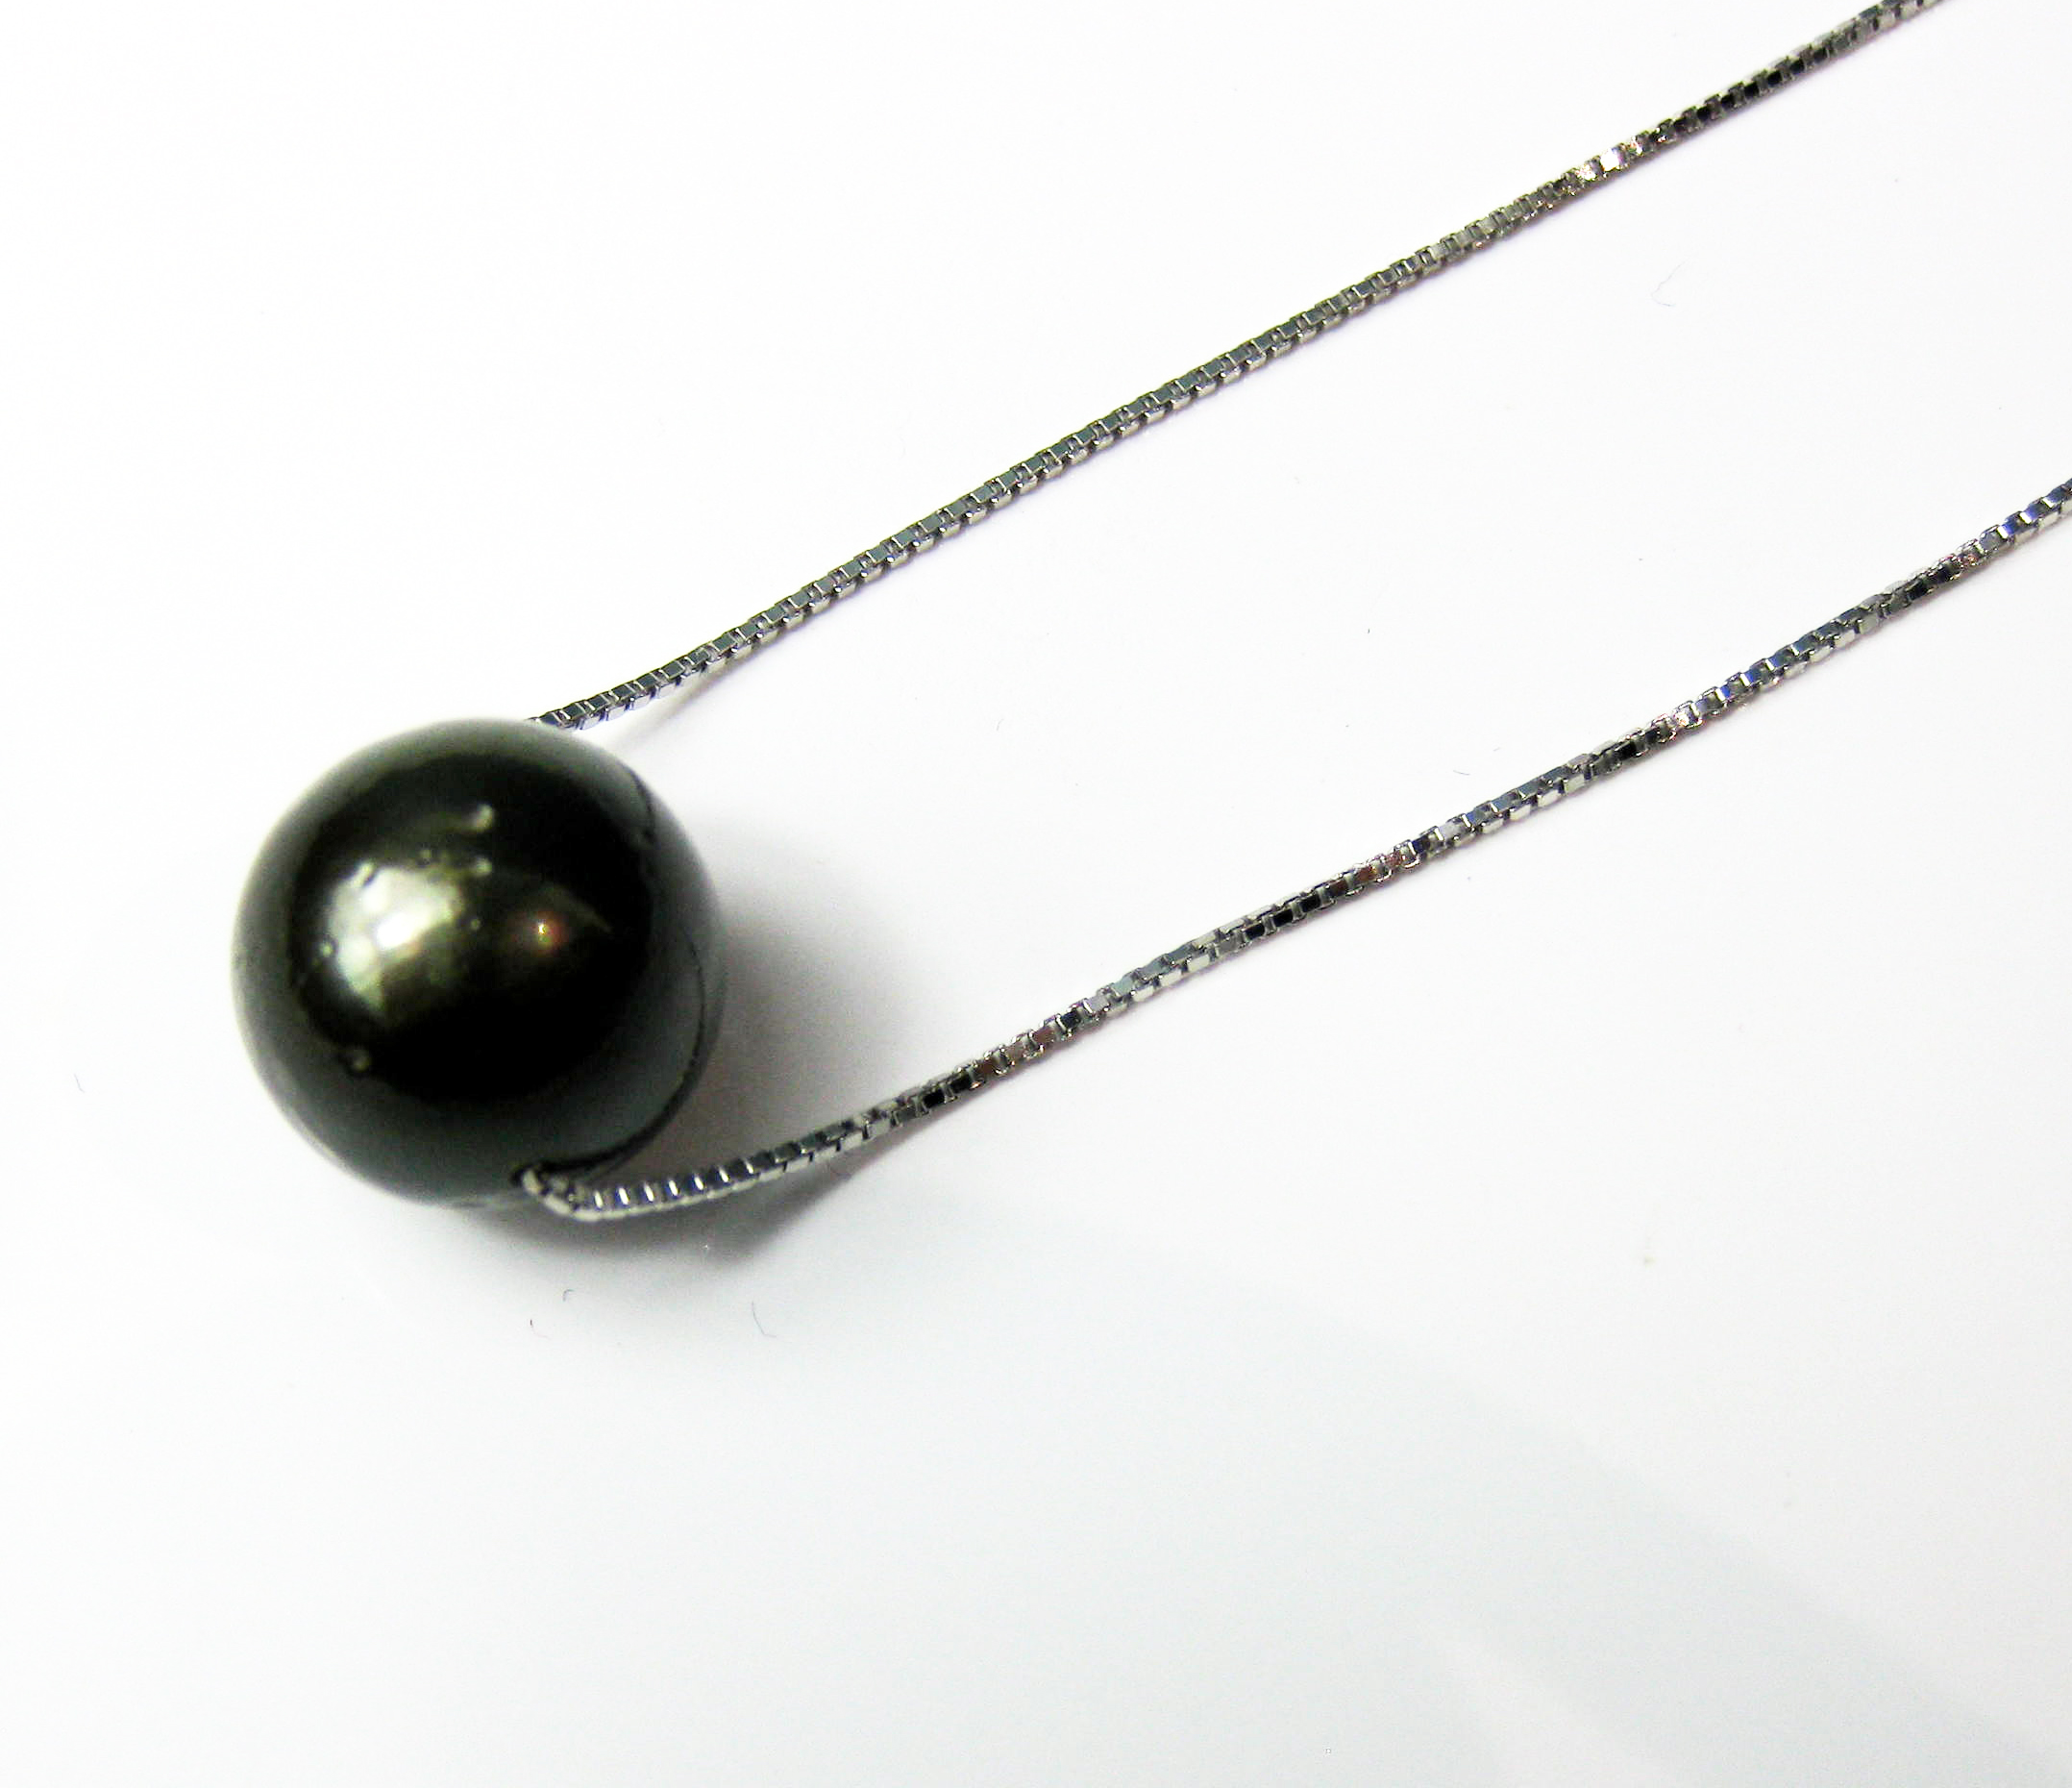 10.5 - 11.5 mm AA- Black Tahitian Pearl Solitaire Necklace 925 silver chain - nk154